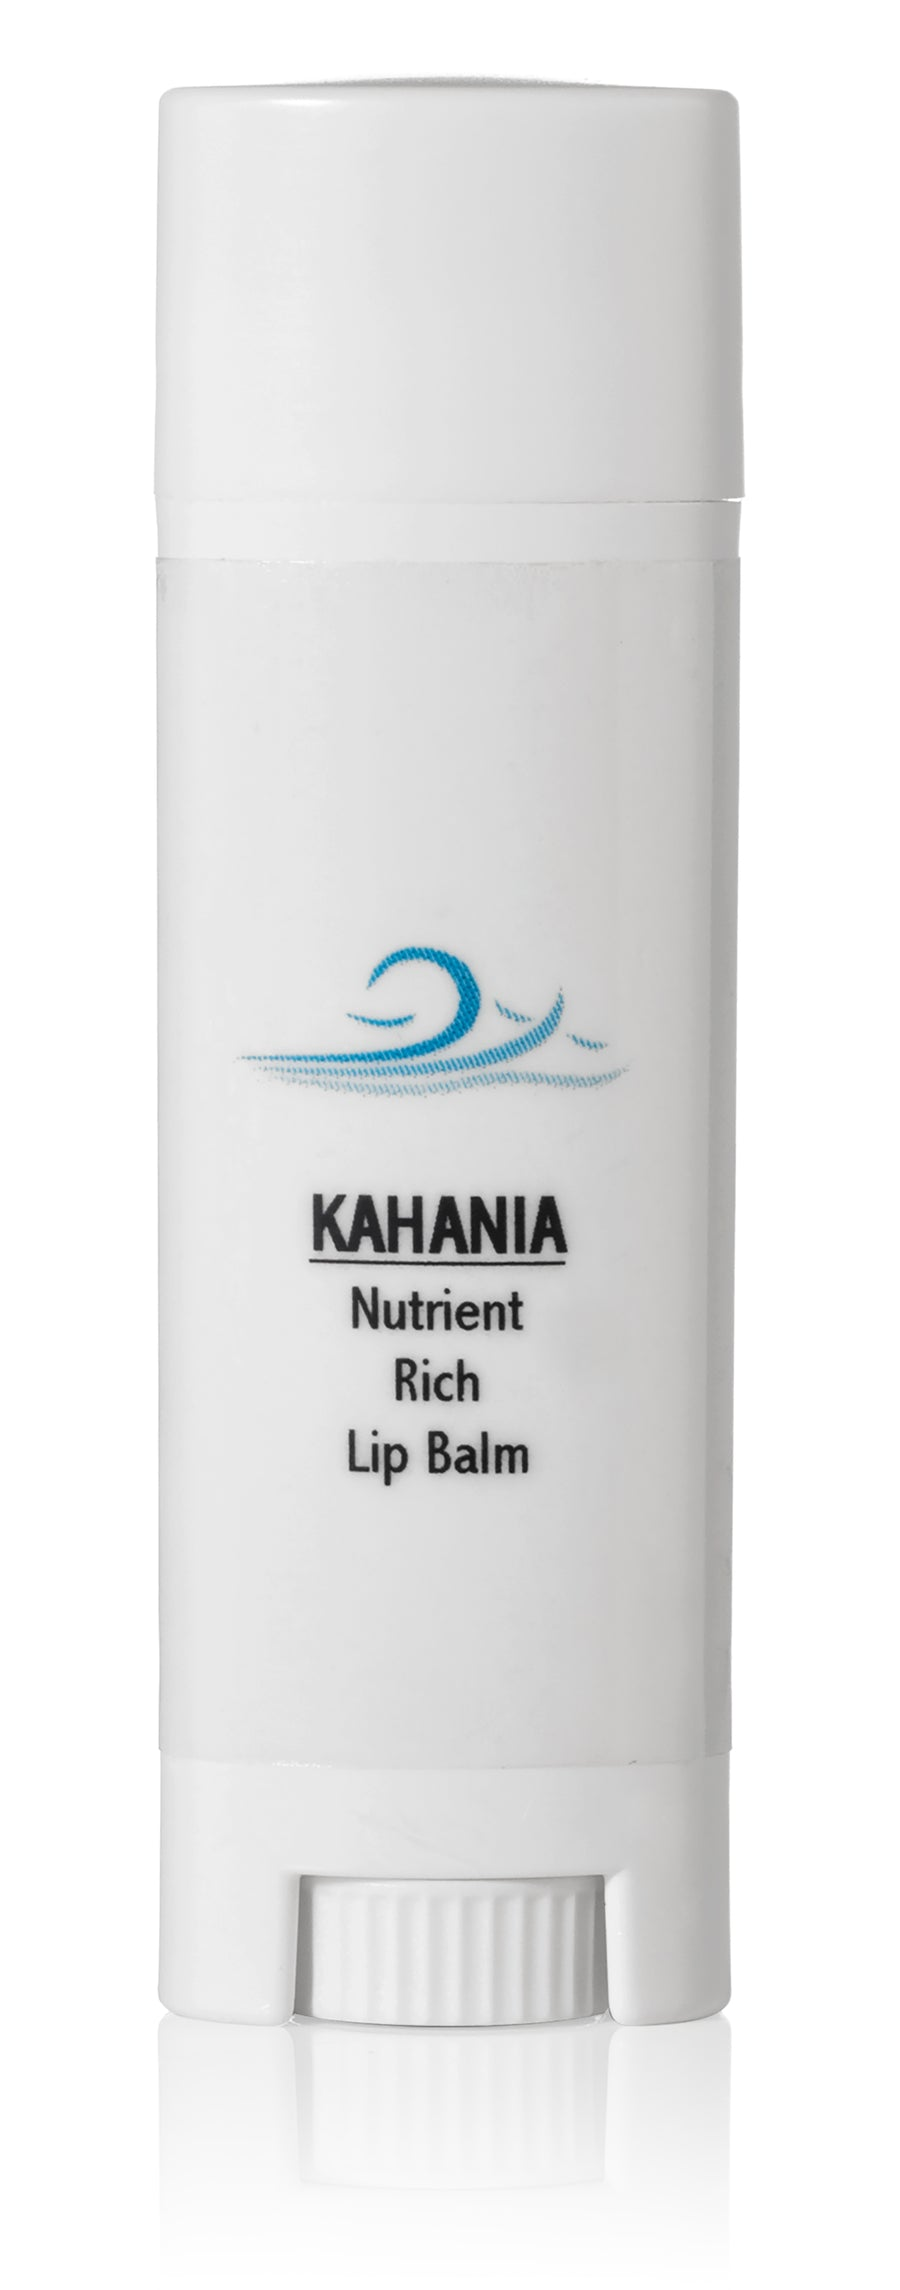 Nutrient Rich Lip Balm - Kahania Natural